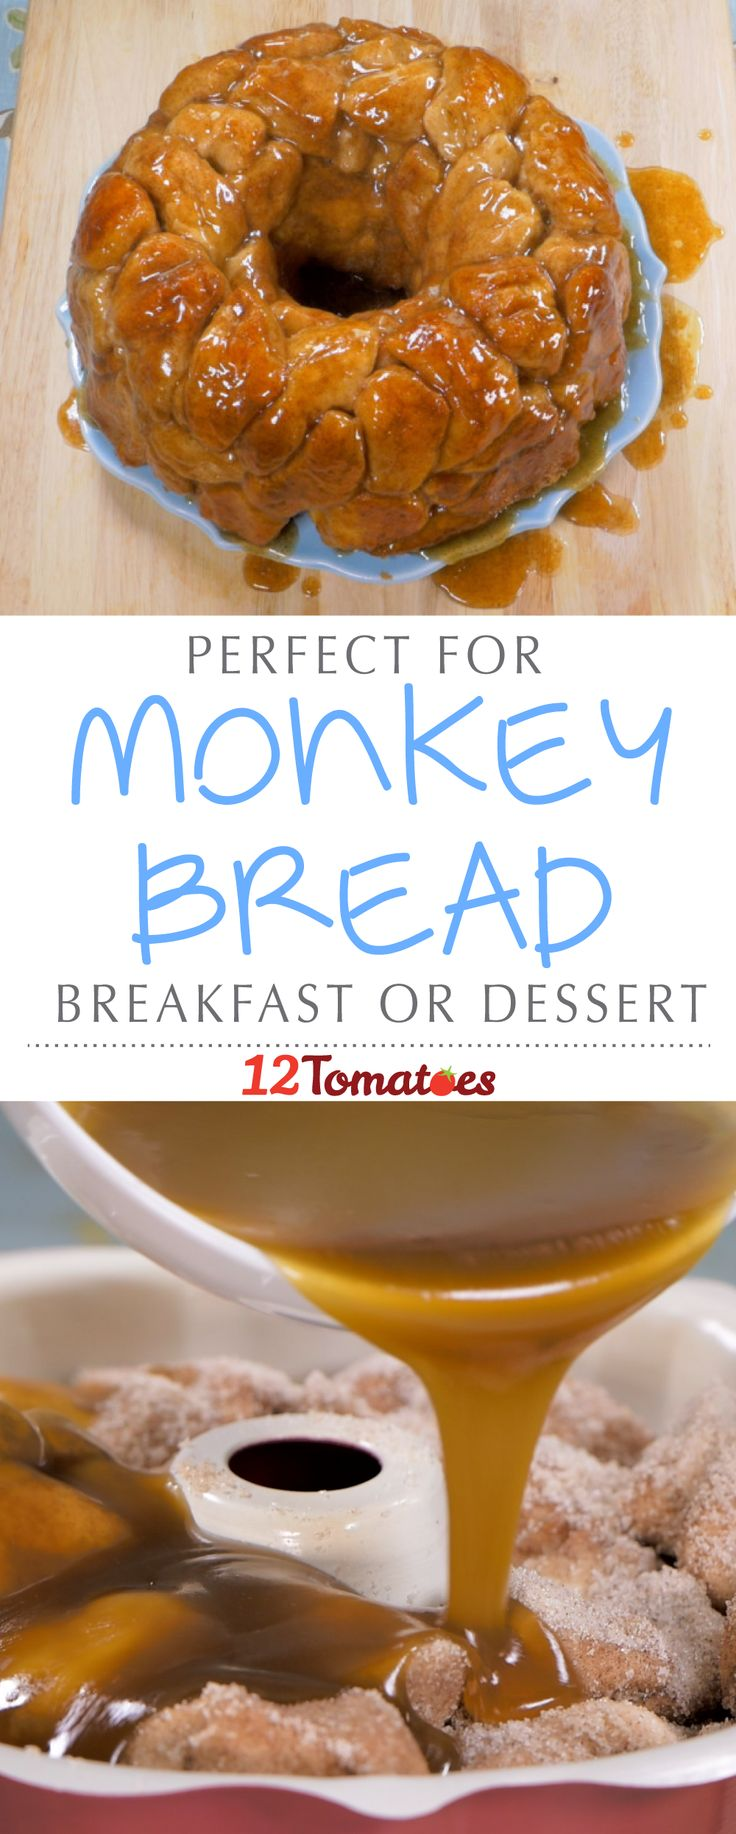 If you've ever heard of or tried monkey bread, you'll be thrilled to see this recipe. If not, let us let you in a little secret: monkey bread is one of the best breakfast/desserts we've ever made.